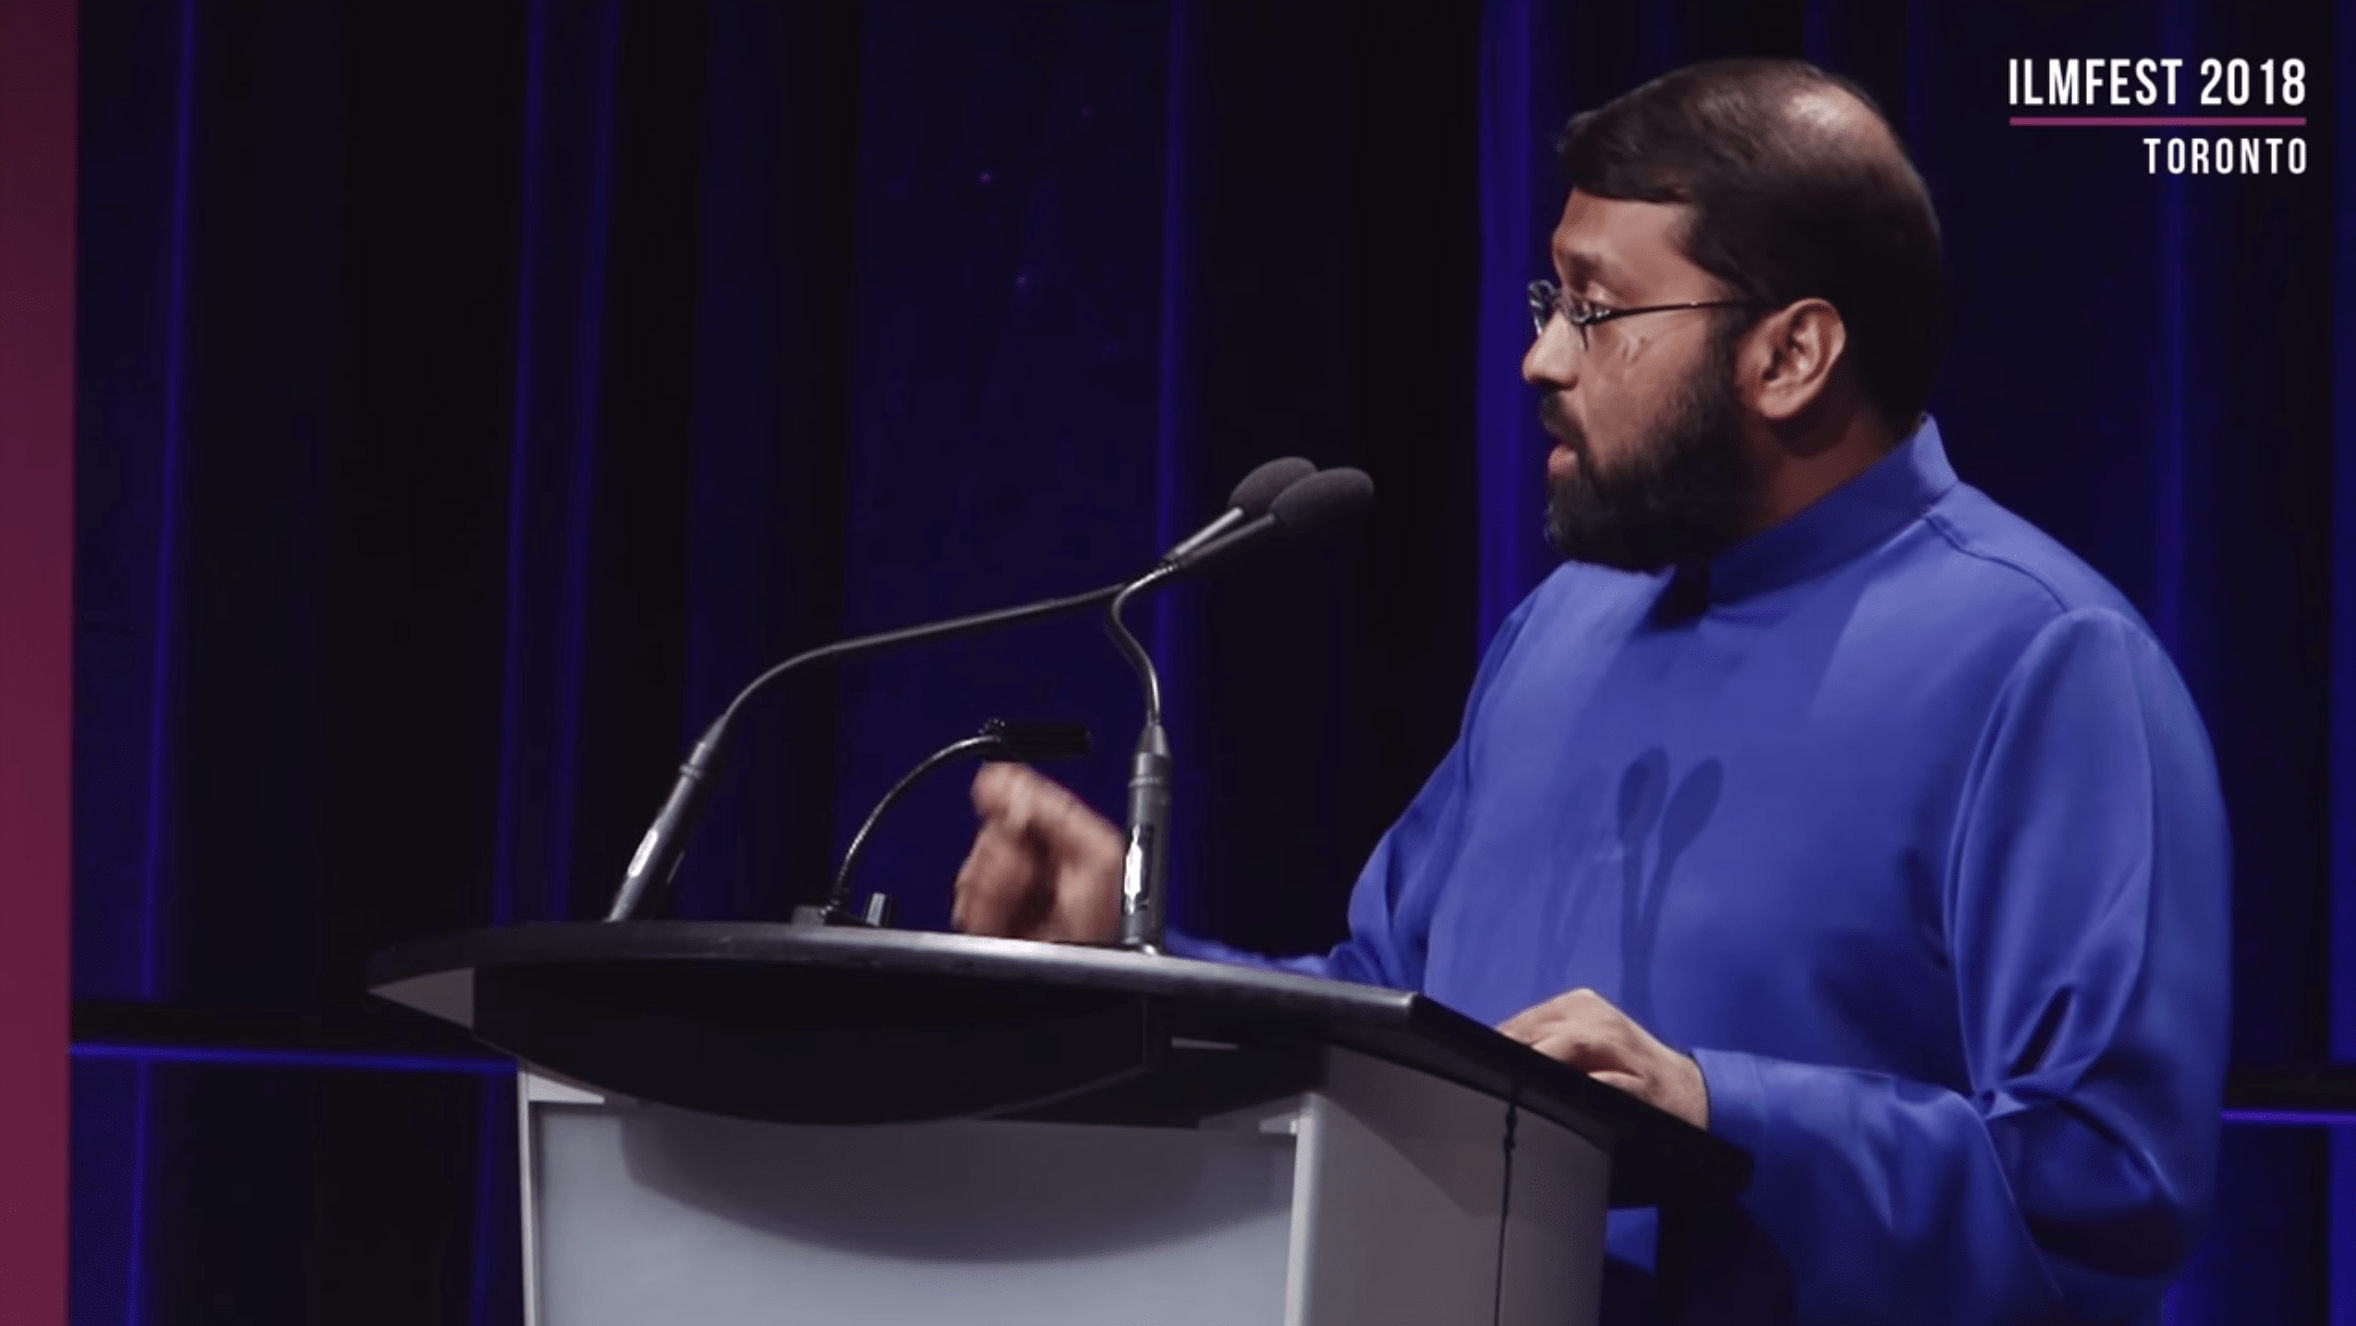 Yasir Qadhi – Weathering The Storm: Standing Firm On Our Principles